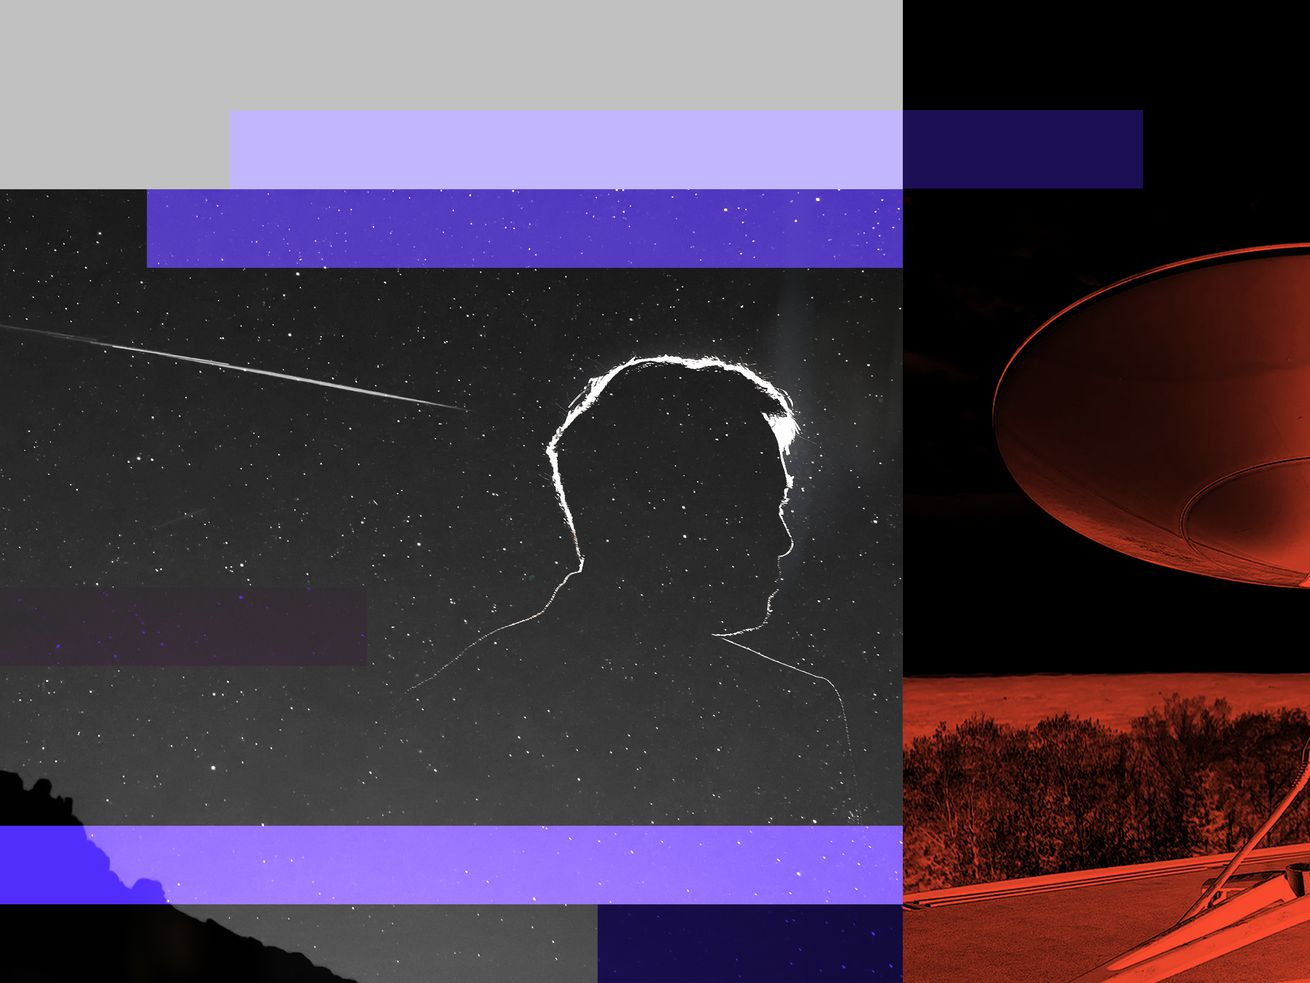 A photo-illustration of Elon Musk in silhouette in front of a night sky with a streak of light and beside a satellite dish.